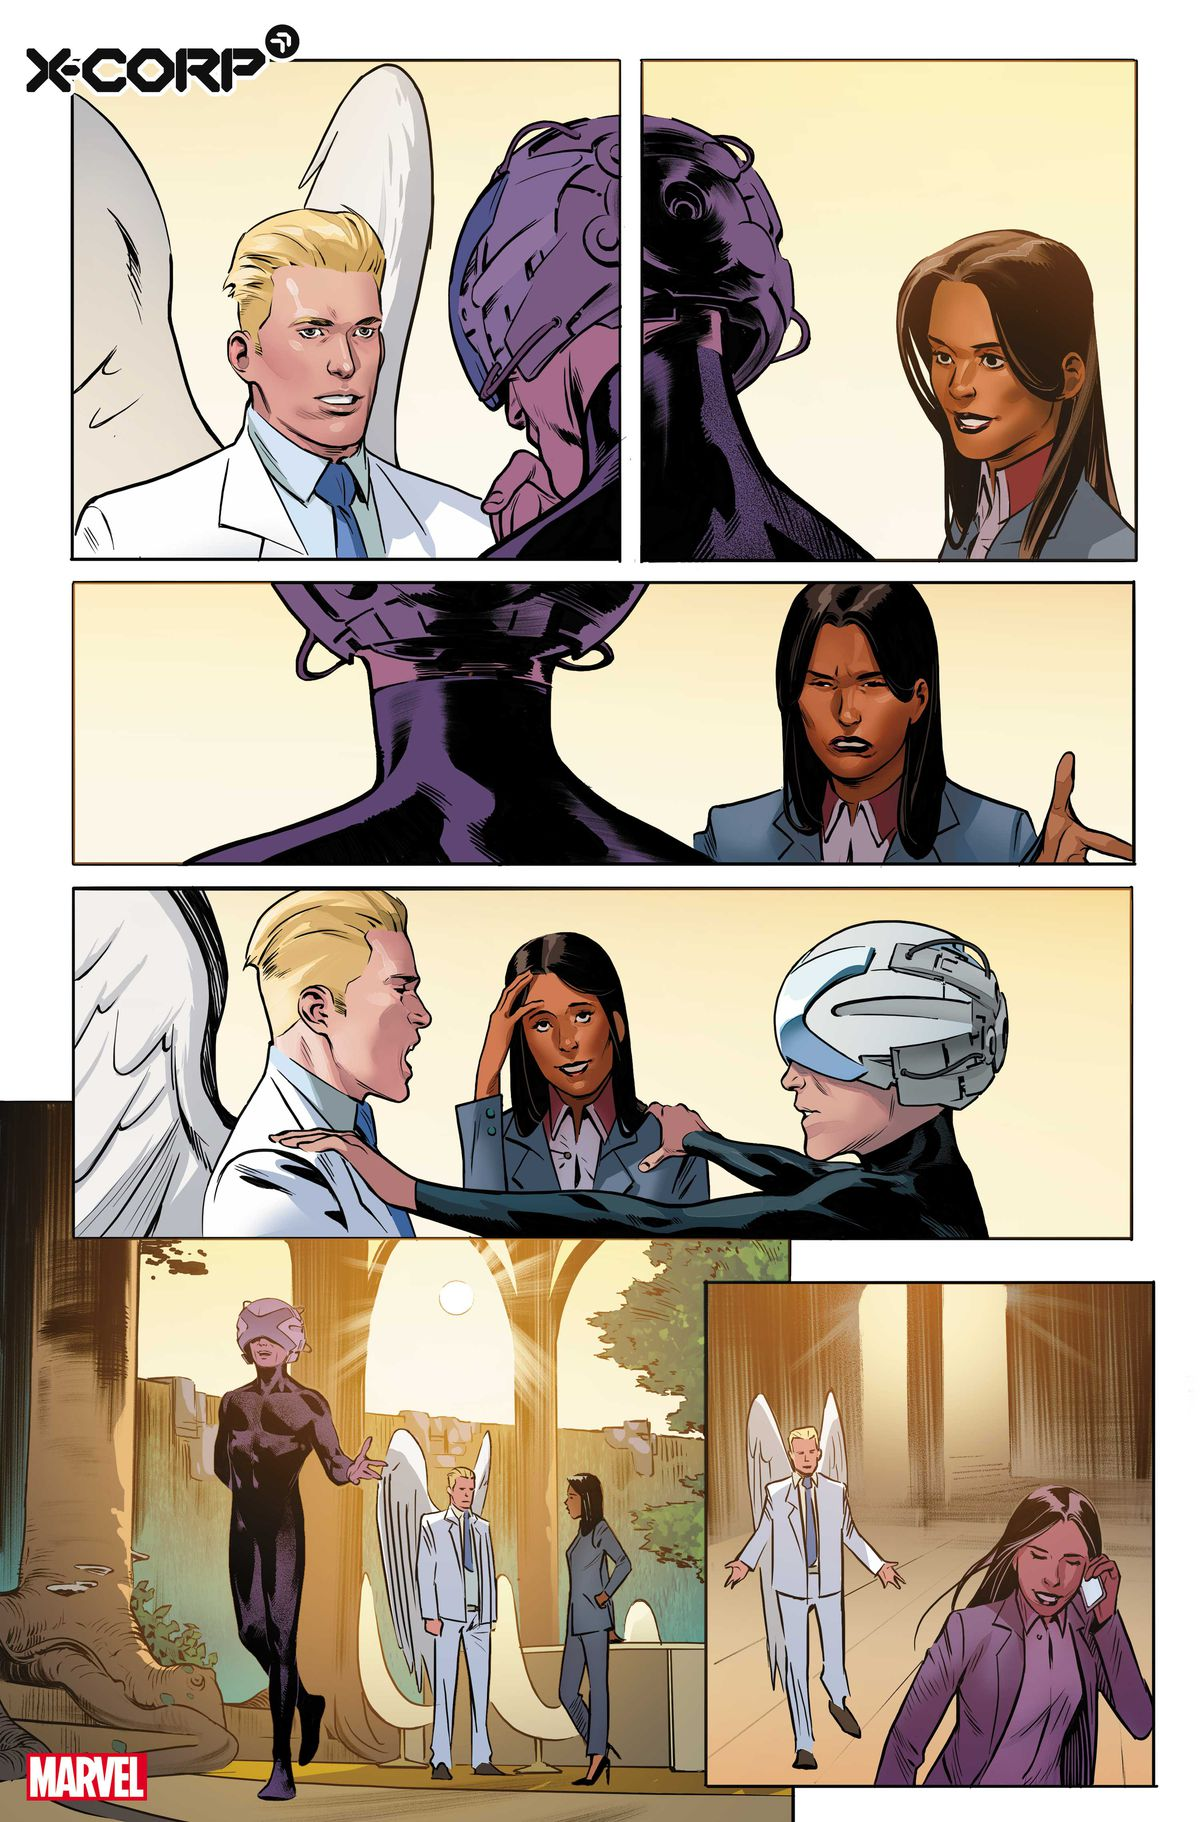 Angel, Monet St. Croix and Charles Xavier speak to each other in the preview for X-Corp # 1, Marvel Comics (2021).